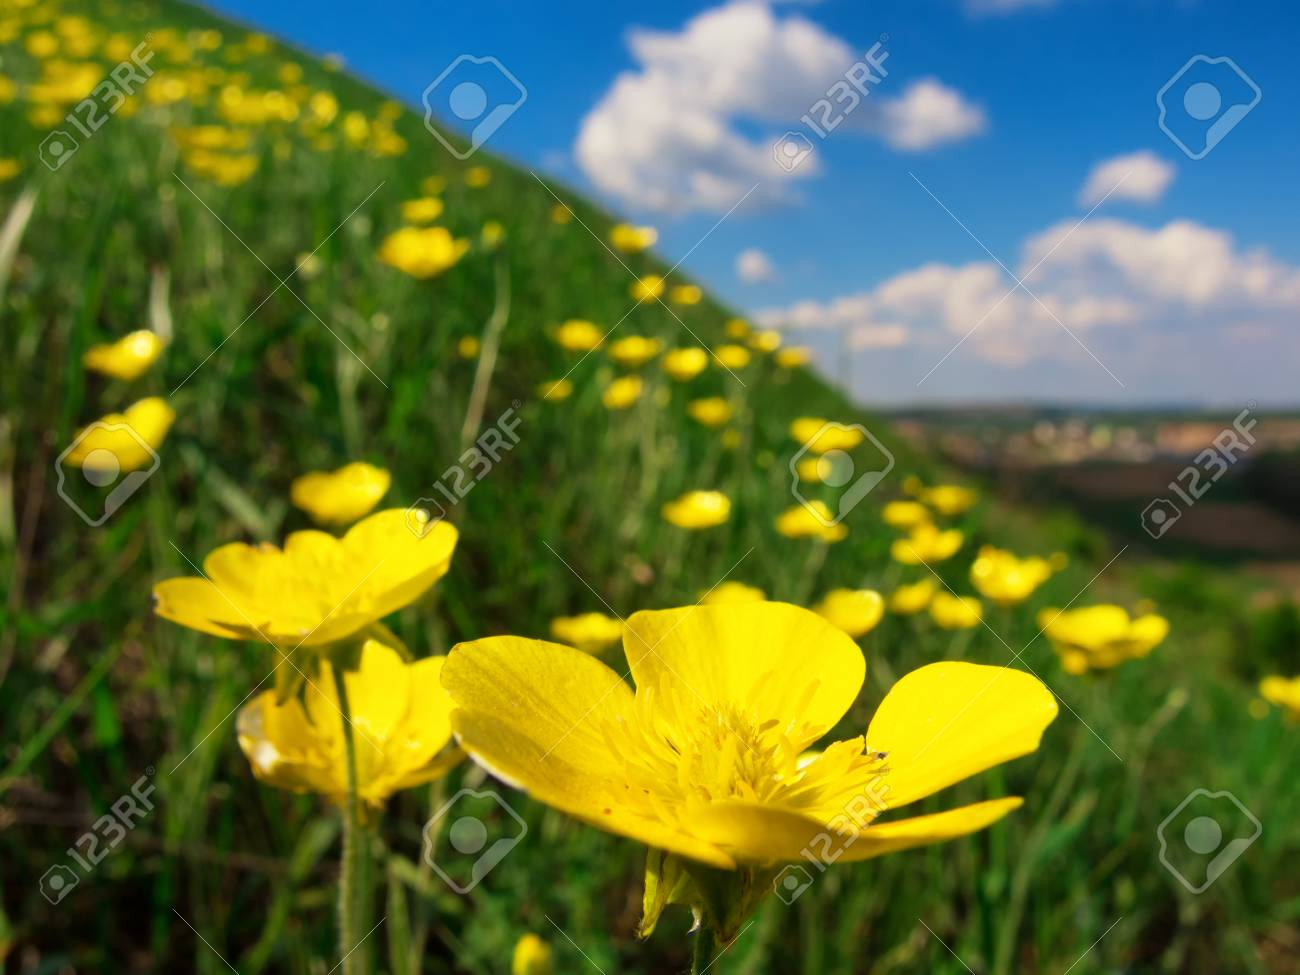 Wild yellow flowers on a grassy slope macro shot stock photo stock photo wild yellow flowers on a grassy slope macro shot mightylinksfo